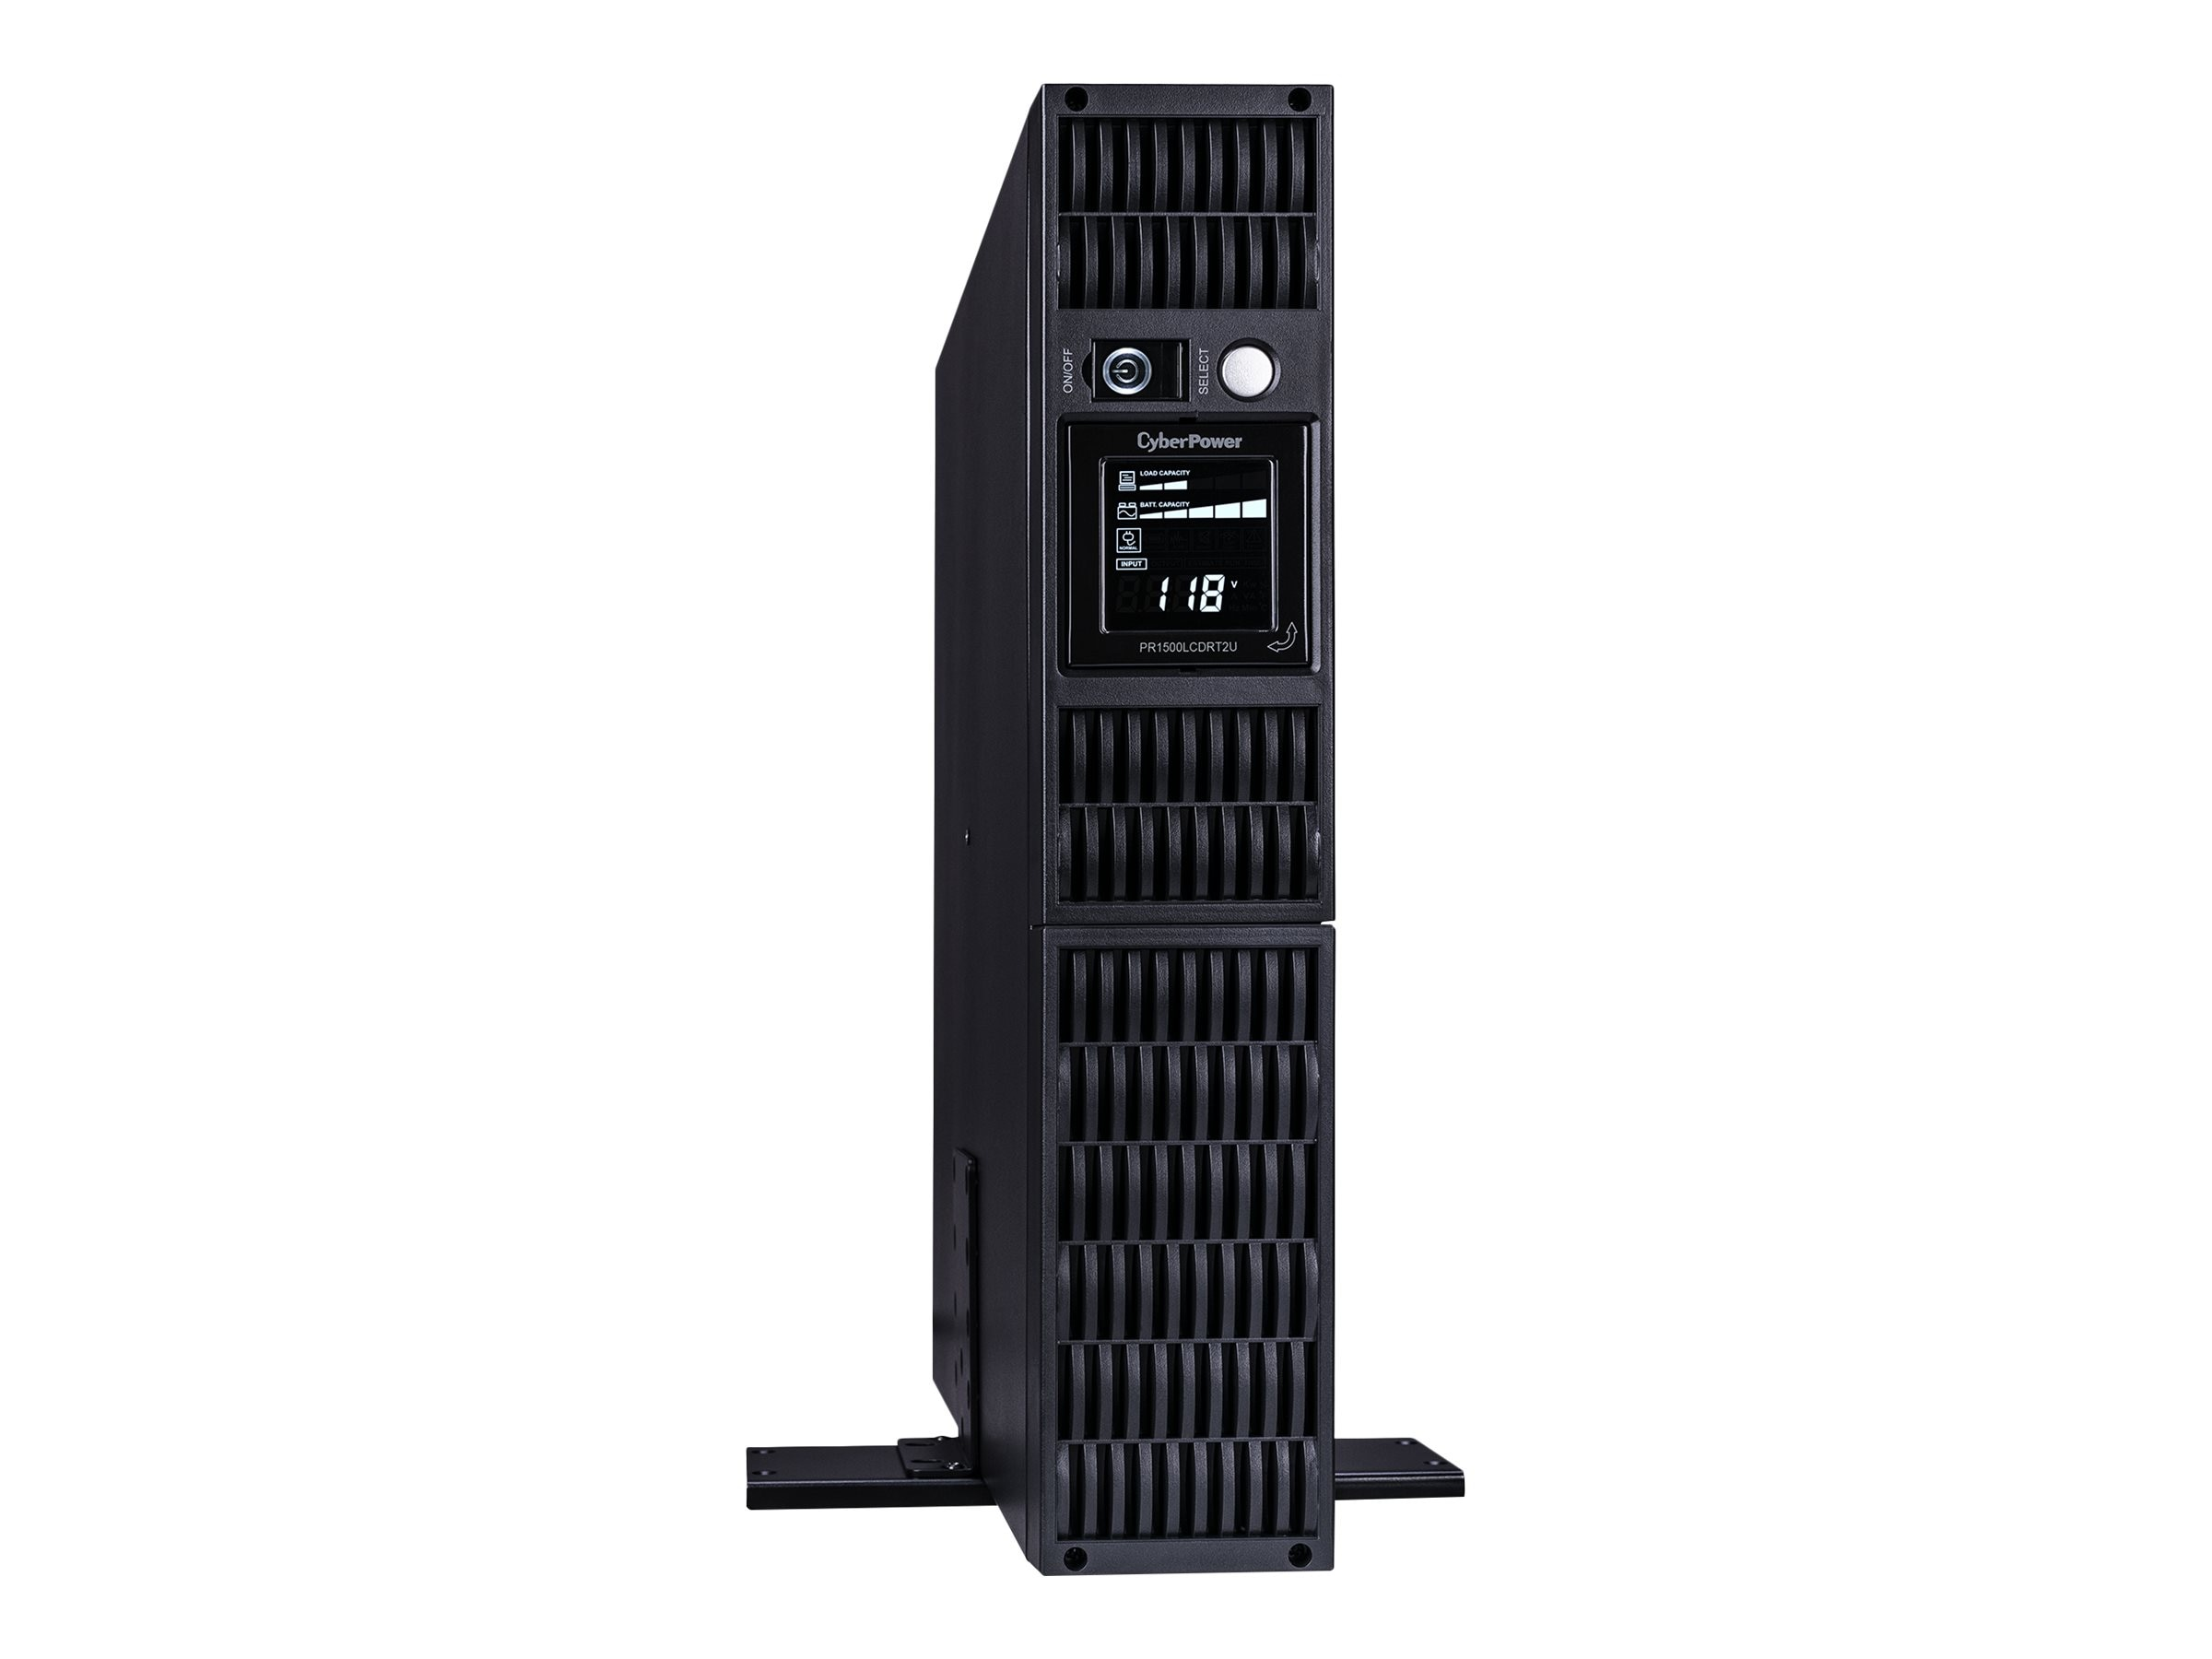 CyberPower 1500VA 1000W Smart App Sinewave LCD UPS 2U RM Tower AVR, PR1500LCDRT2U, 8875178, Battery Backup/UPS